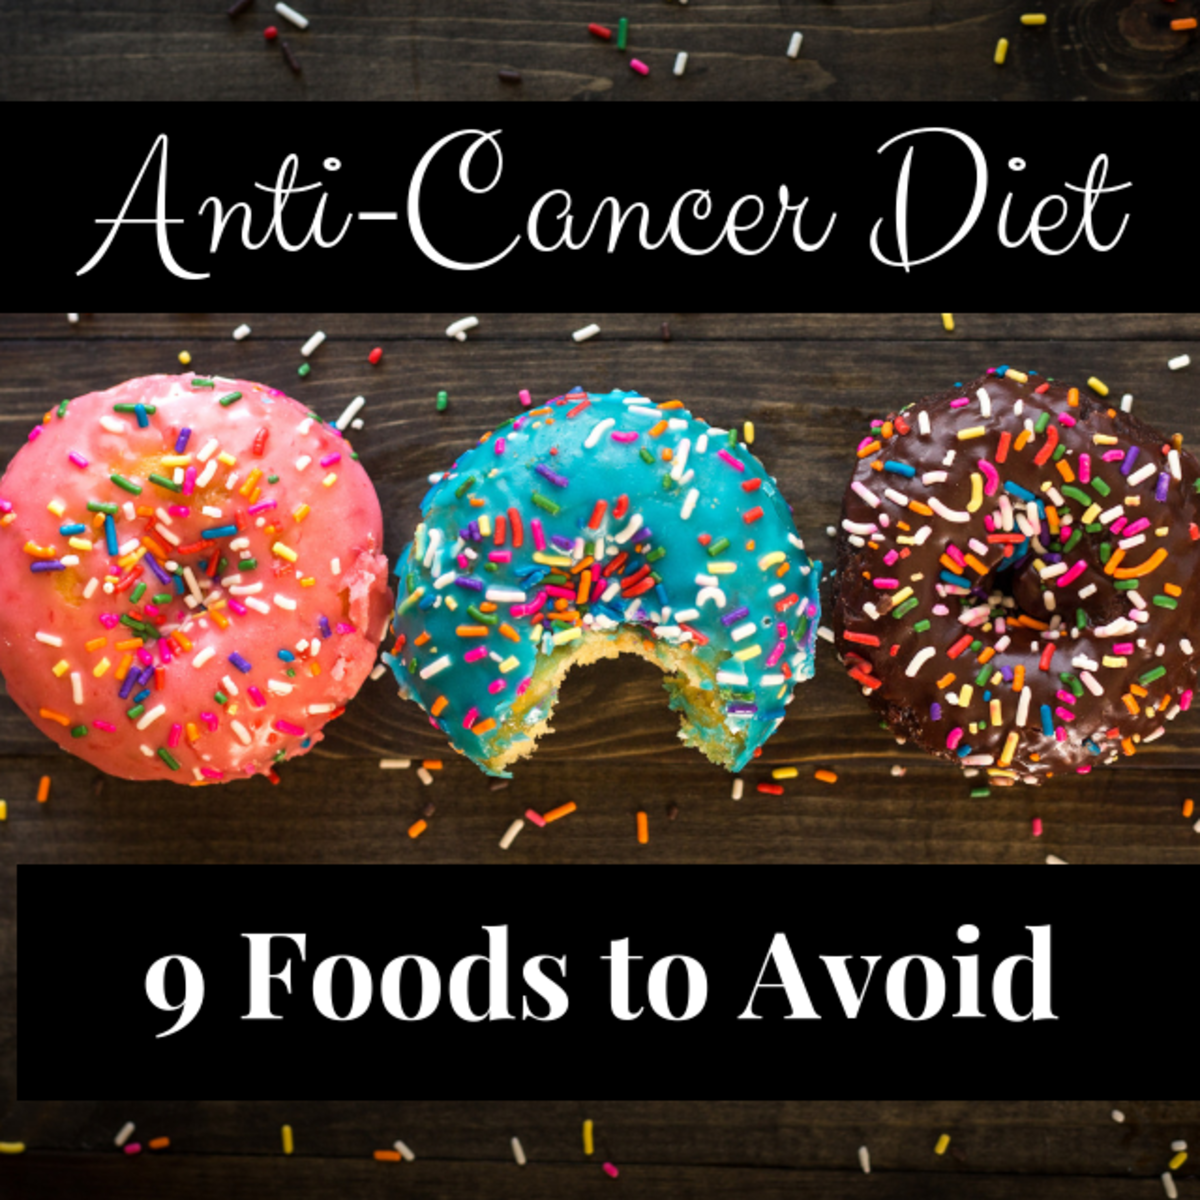 9 Foods to Avoid on an Anti-Cancer Diet